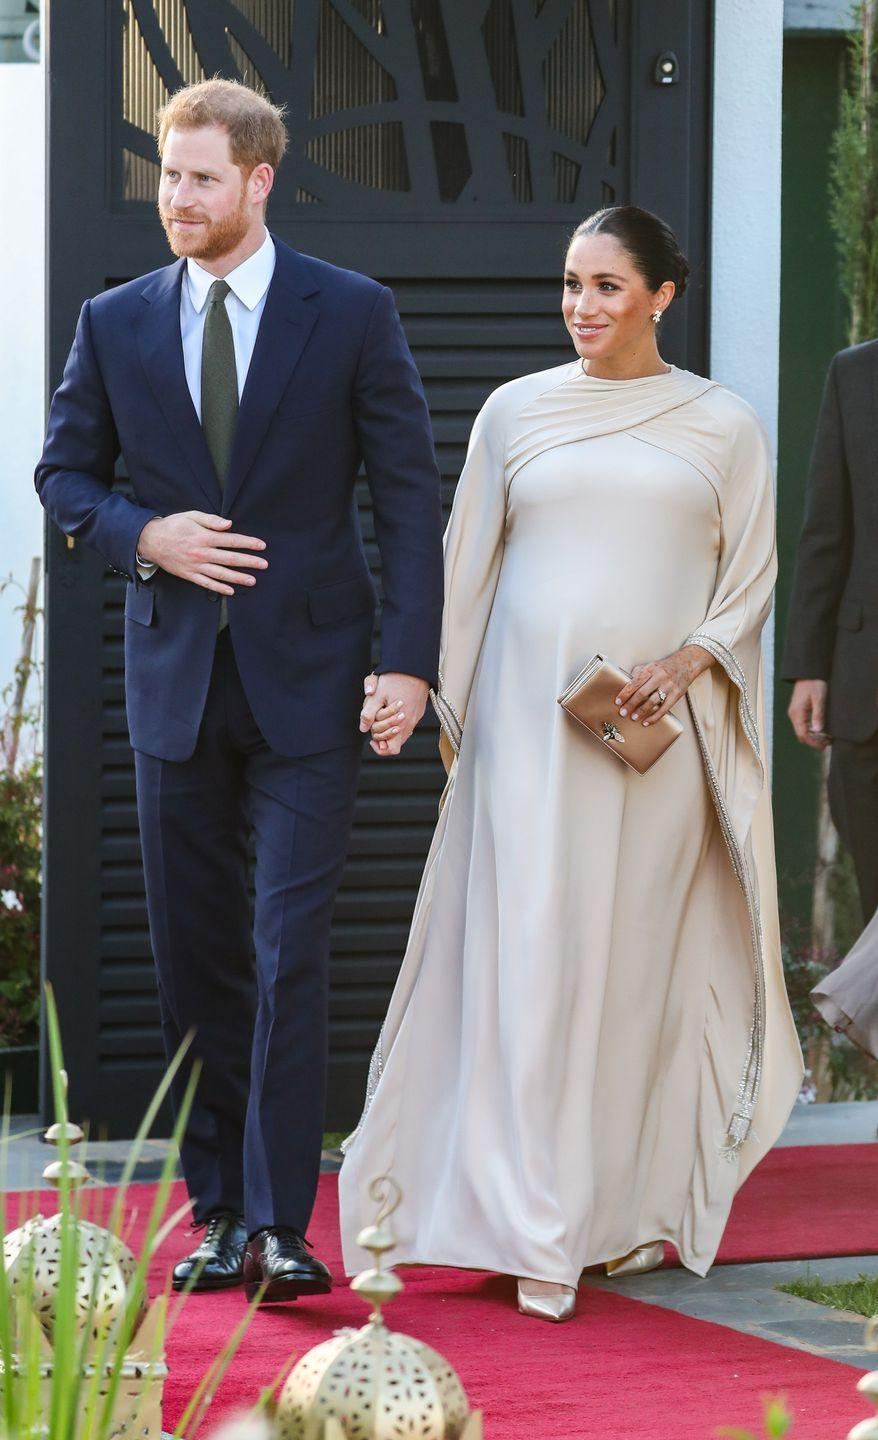 "<p>The royal couple <a href=""https://www.townandcountrymag.com/style/fashion-trends/g3272/meghan-markle-preppy-style/"" rel=""nofollow noopener"" target=""_blank"" data-ylk=""slk:looked stylish"" class=""link rapid-noclick-resp"">looked stylish</a> as they arrived holding hands to <a href=""https://www.townandcountrymag.com/society/tradition/g26364847/prince-harry-and-meghan-markle-morocco-2019-visit-photos/"" rel=""nofollow noopener"" target=""_blank"" data-ylk=""slk:a reception at the British residency in Morocco"" class=""link rapid-noclick-resp"">a reception at the British residency in Morocco</a>. </p>"